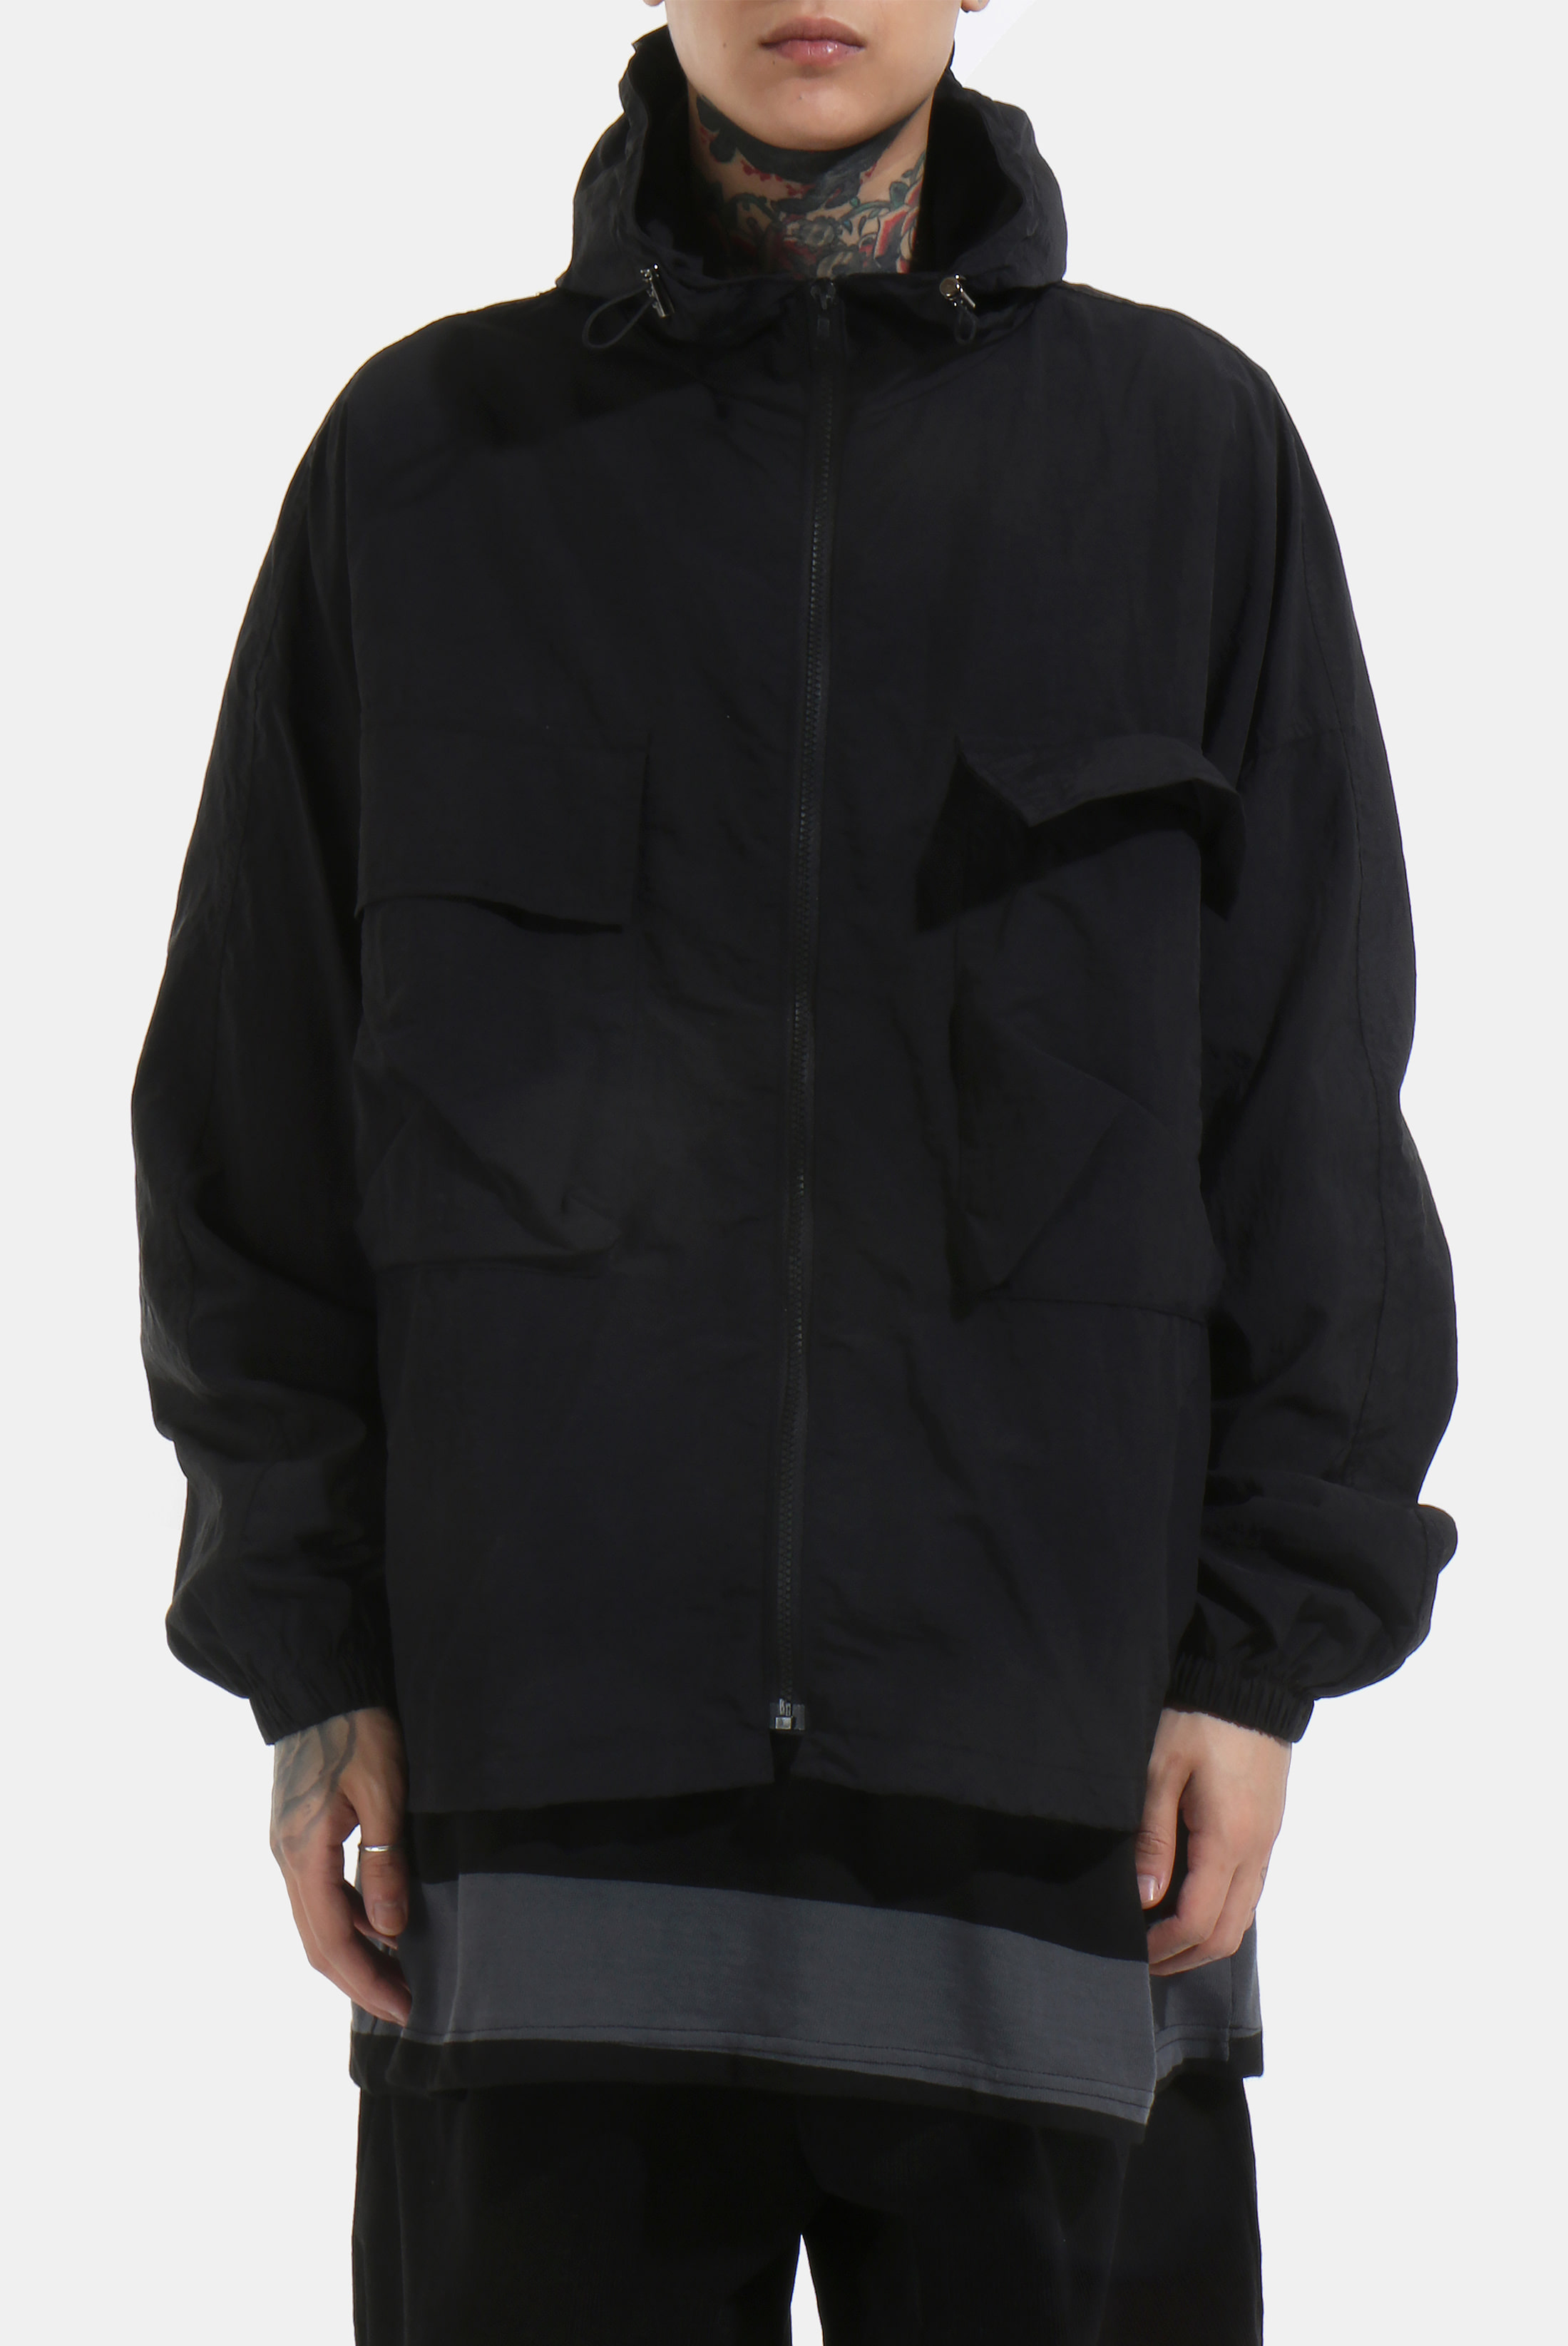 Washer_Nylon Windbreaker